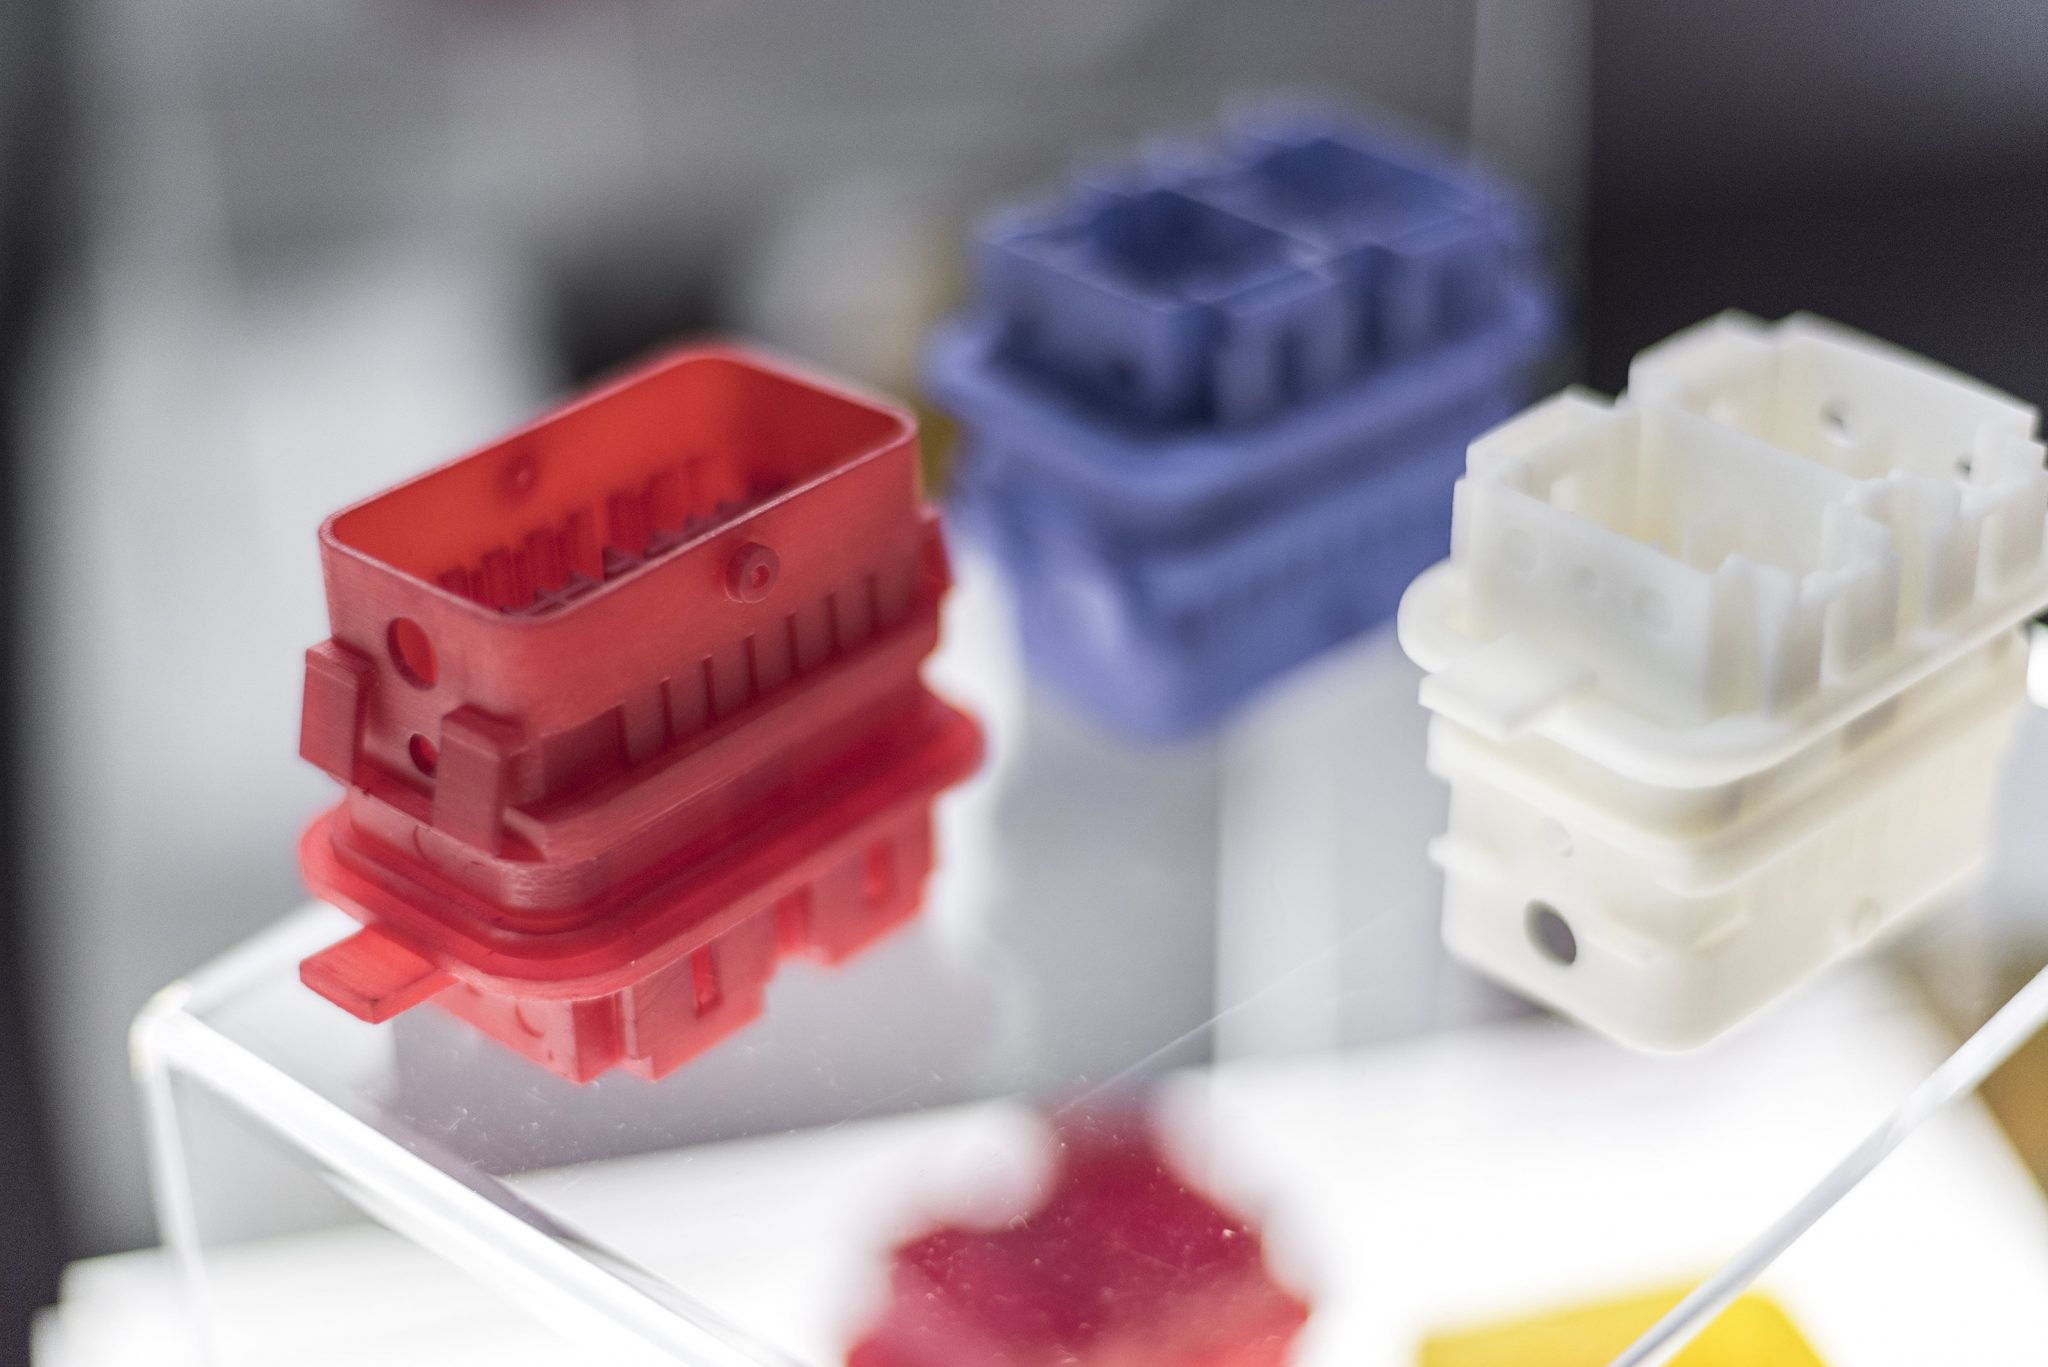 BASF X400M photopolymer resin 3D printed samples. Photo via BASF